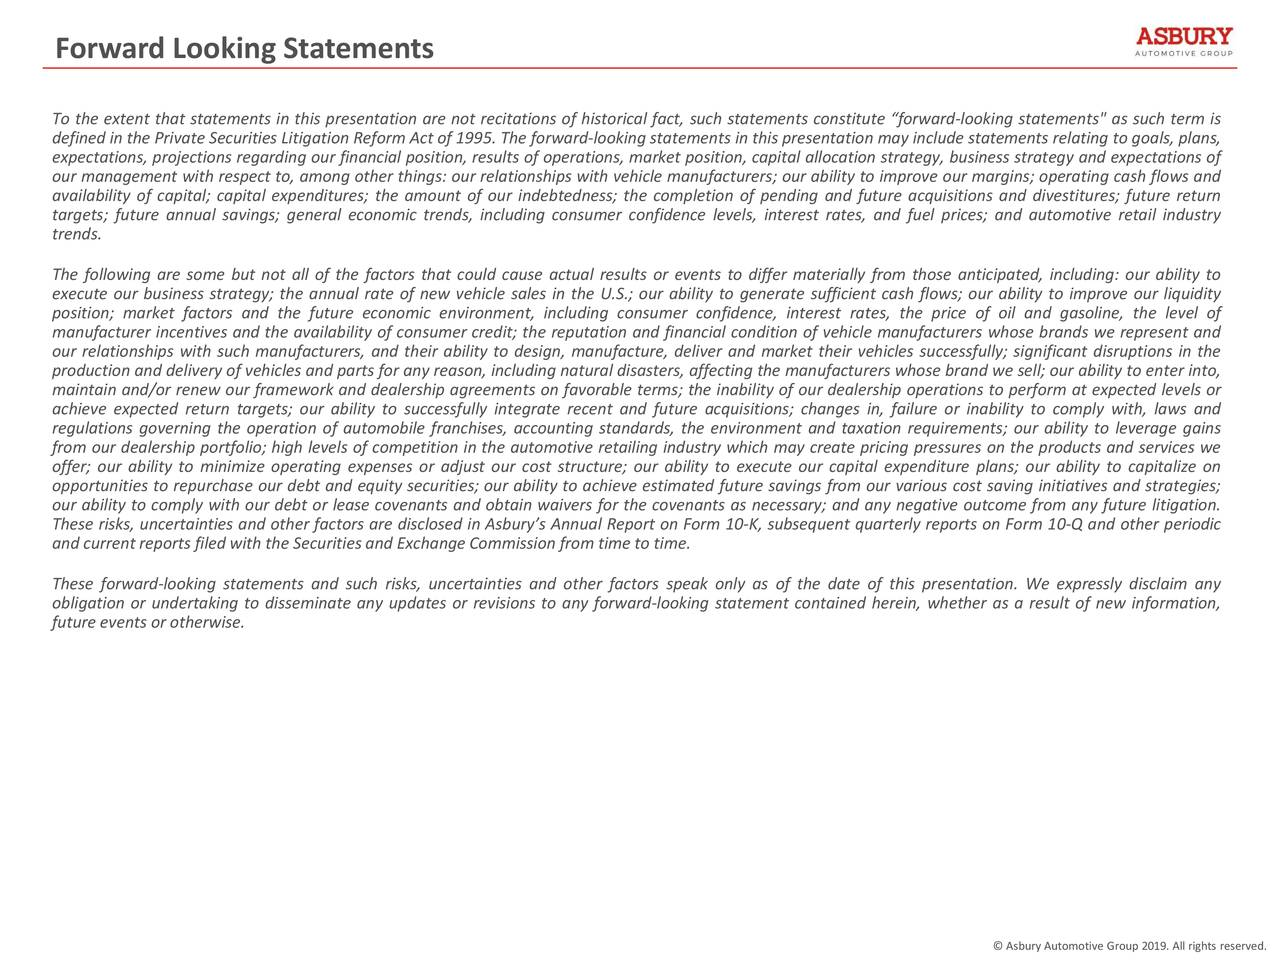 """To the extent that statements in this presentation are not recitations of historical fact, such statements constitute """"forward-looking statements"""" as such term is defined in the Private Securities Litigation Reform Act of 1995. The forward-looking statements in this presentation may include statements relating to goals, plans, expectations, projections regarding our financial position, results of operations, market position, capital allocation strategy, business strategy and expectations of our management with respect to, among other things: our relationships with vehicle manufacturers; our ability to improve our margins; operating cash flows and availability of capital; capital expenditures; the amount of our indebtedness; the completion of pending and future acquisitions and divestitures; future return targets; future annual savings; general economic trends, including consumer confidence levels, interest rates, and fuel prices; and automotive retail industry trends. The following are some but not all of the factors that could cause actual results or events to differ materially from those anticipated, including: our ability to execute our business strategy; the annual rate of new vehicle sales in the U.S.; our ability to generate sufficient cash flows; our ability to improve our liquidity position; market factors and the future economic environment, including consumer confidence, interest rates, the price of oil and gasoline, the level of manufacturer incentives and the availability of consumer credit; the reputation and financial condition of vehicle manufacturers whose brands we represent and our relationships with such manufacturers, and their ability to design, manufacture, deliver and market their vehicles successfully; significant disruptions in the production and delivery of vehicles and parts for any reason, including natural disasters, affecting the manufacturers whose brand we sell; our ability to enter into, maintain and/or renew our framework and dealer"""